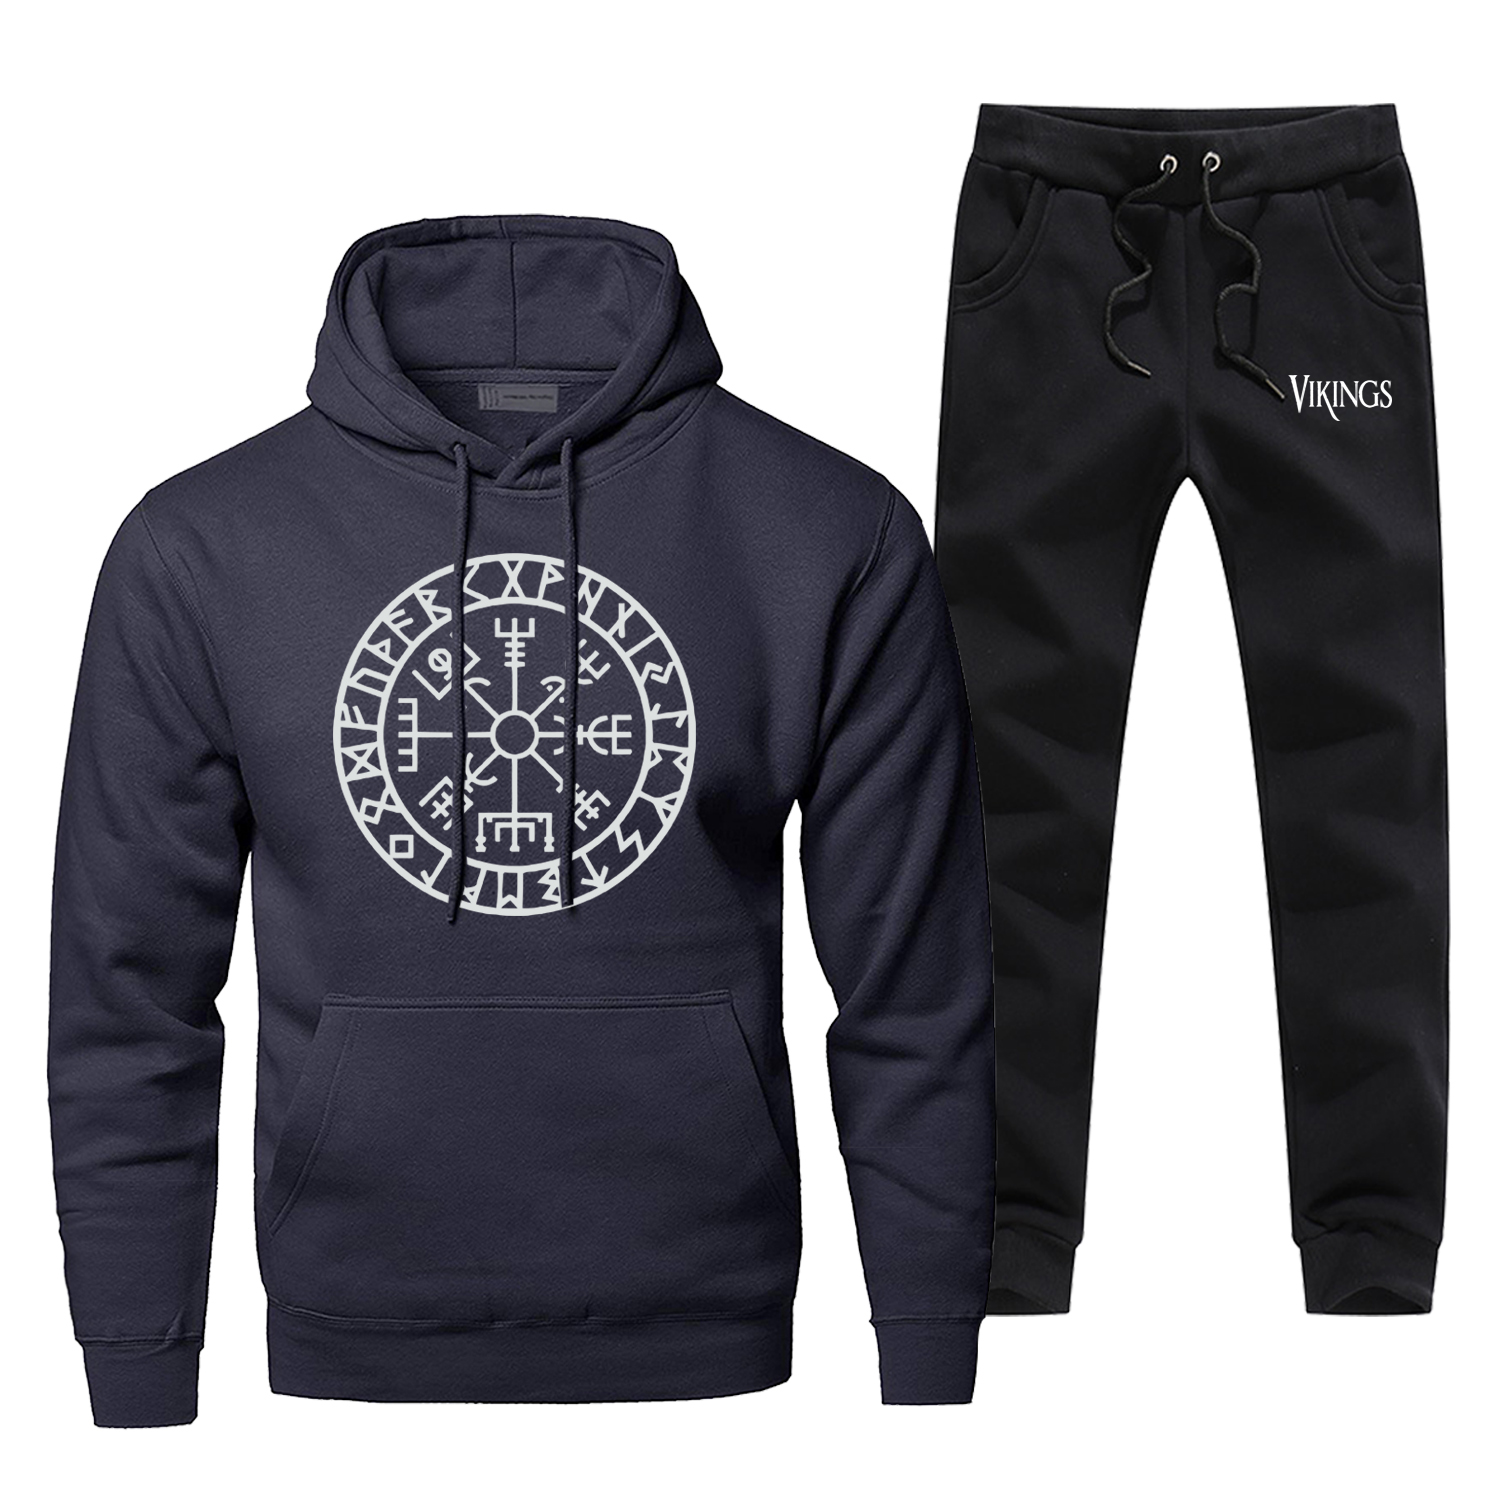 Odin Vikings Hoodie Pants Set Men Sweatshirt Male Hoodies Sweatshirts Odins Viking Mens Sets Two Piece Pant Pullover Hoody Coat